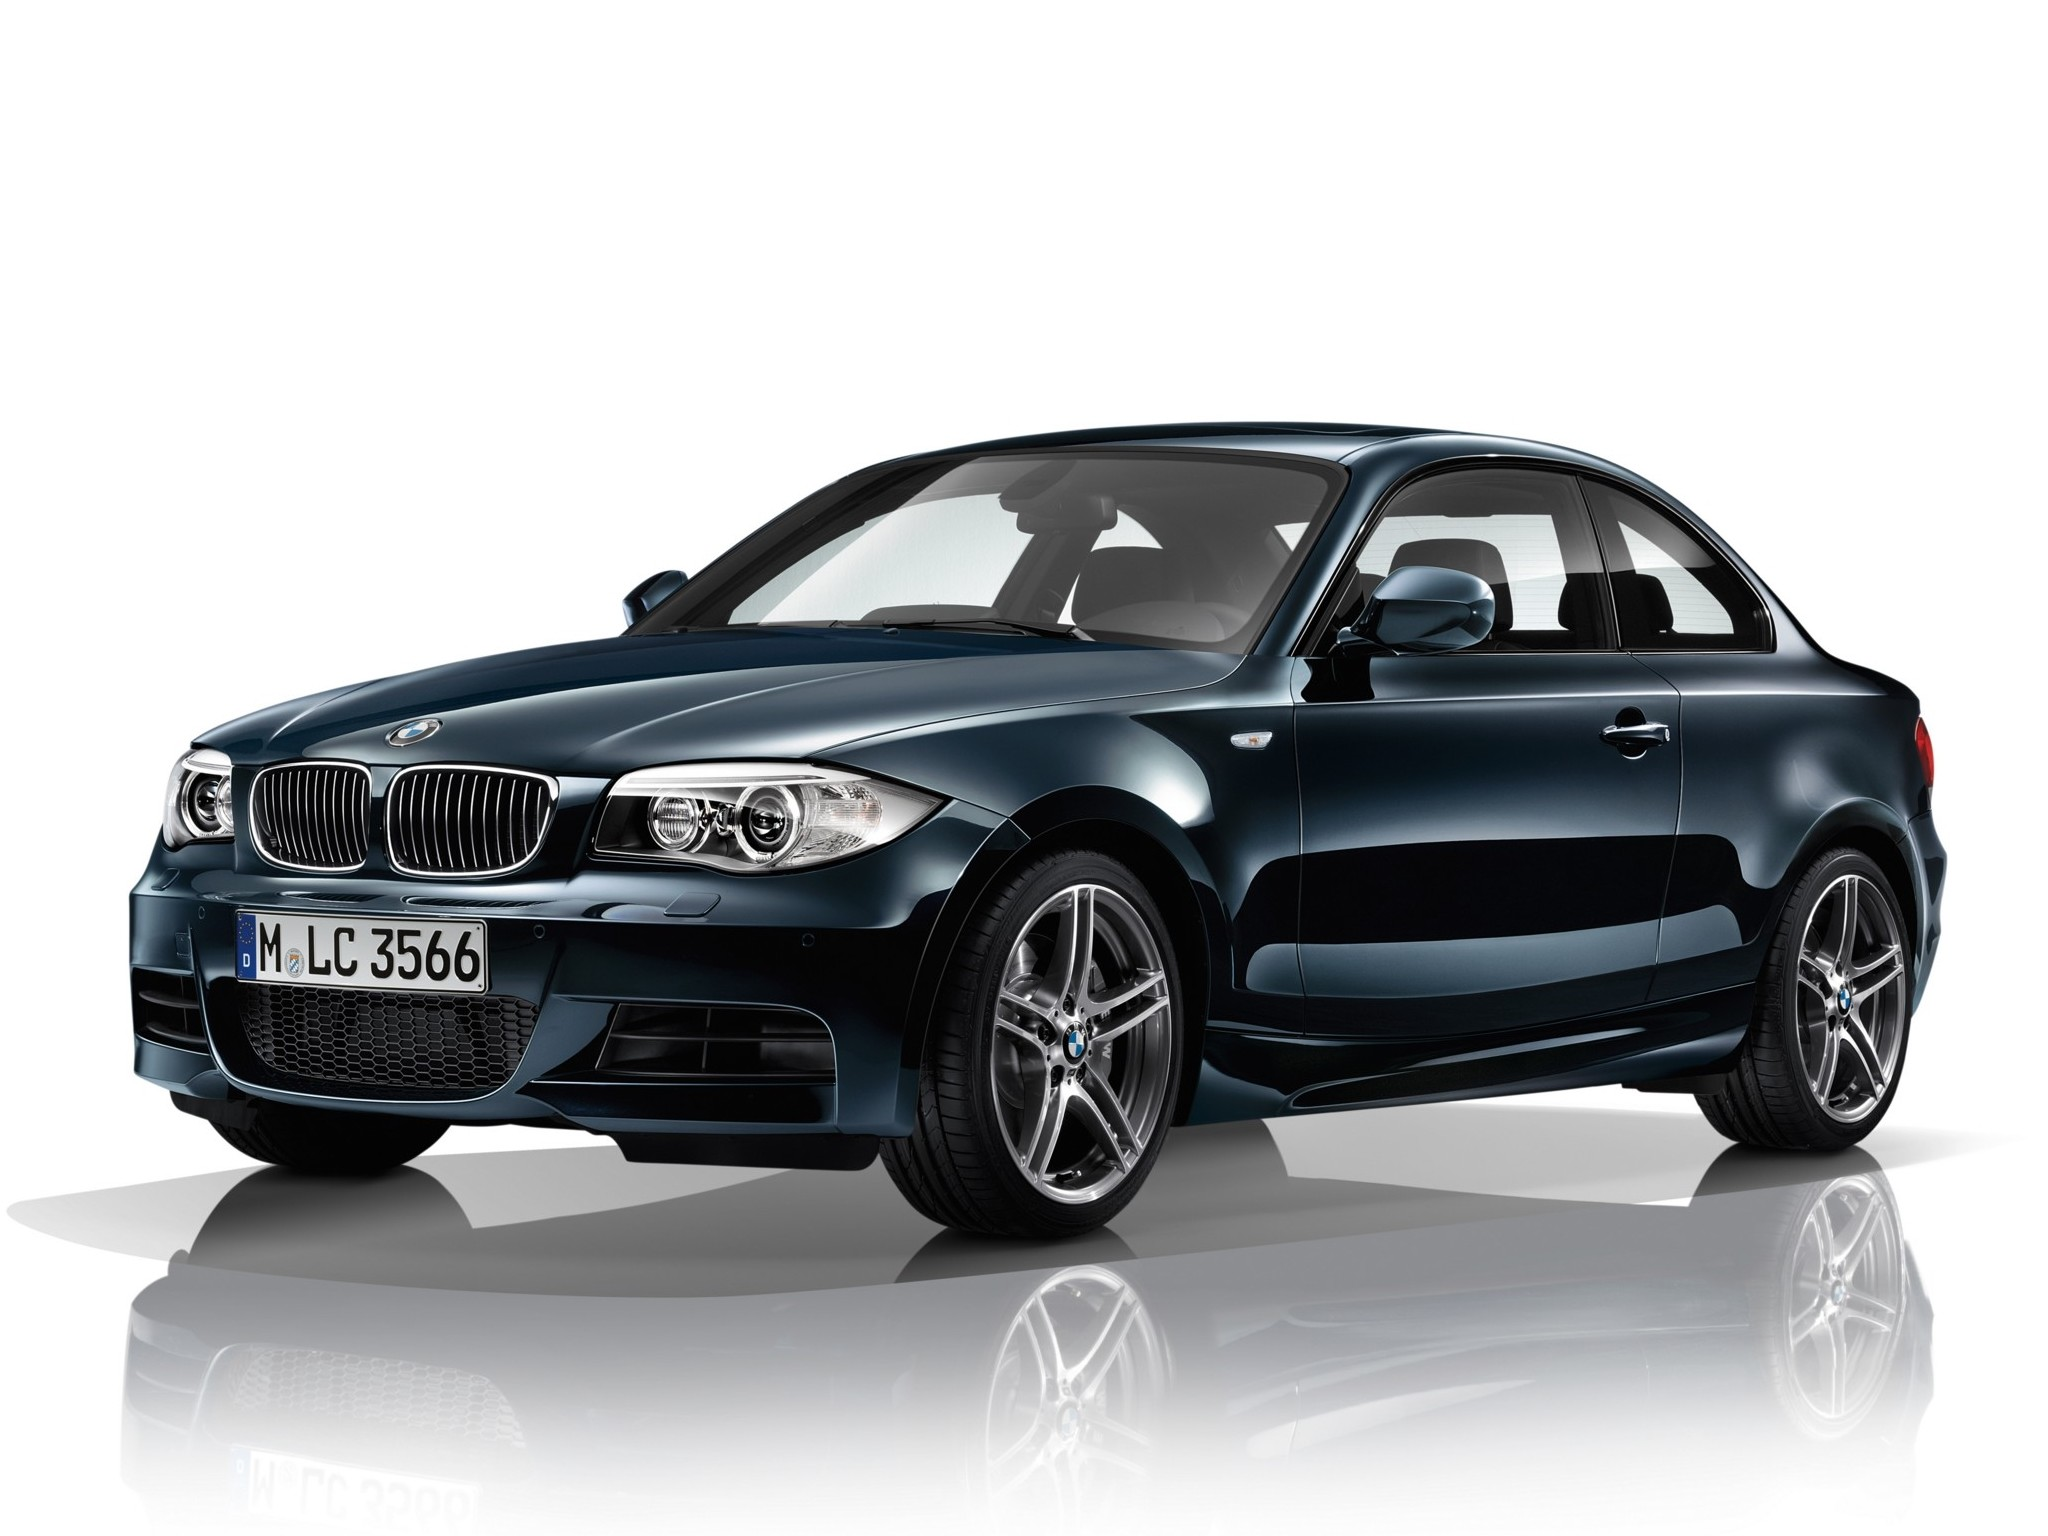 bmw 1 series coupe e82 specs 2010 2011 2012 2013. Black Bedroom Furniture Sets. Home Design Ideas